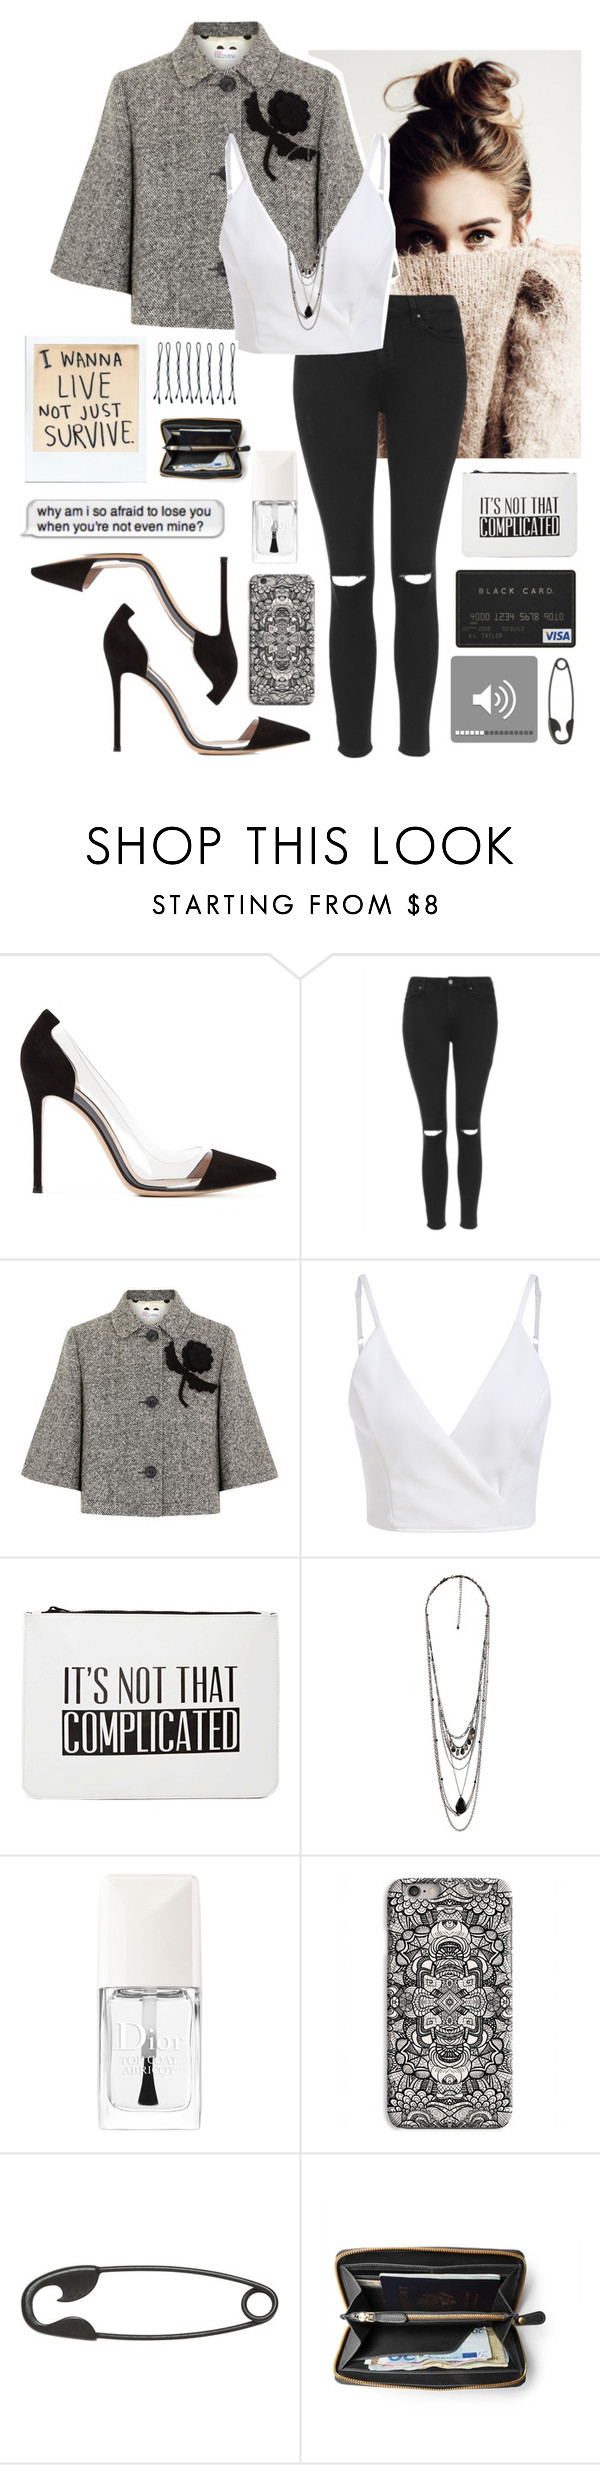 """Sem título #208"" by sophiabotelho ❤ liked on Polyvore featuring Gianvito Rossi, Topshop, RED Valentino, Nila Anthony, Forever 21, Christian Dior, INDIE HAIR, Other and BOBBY"